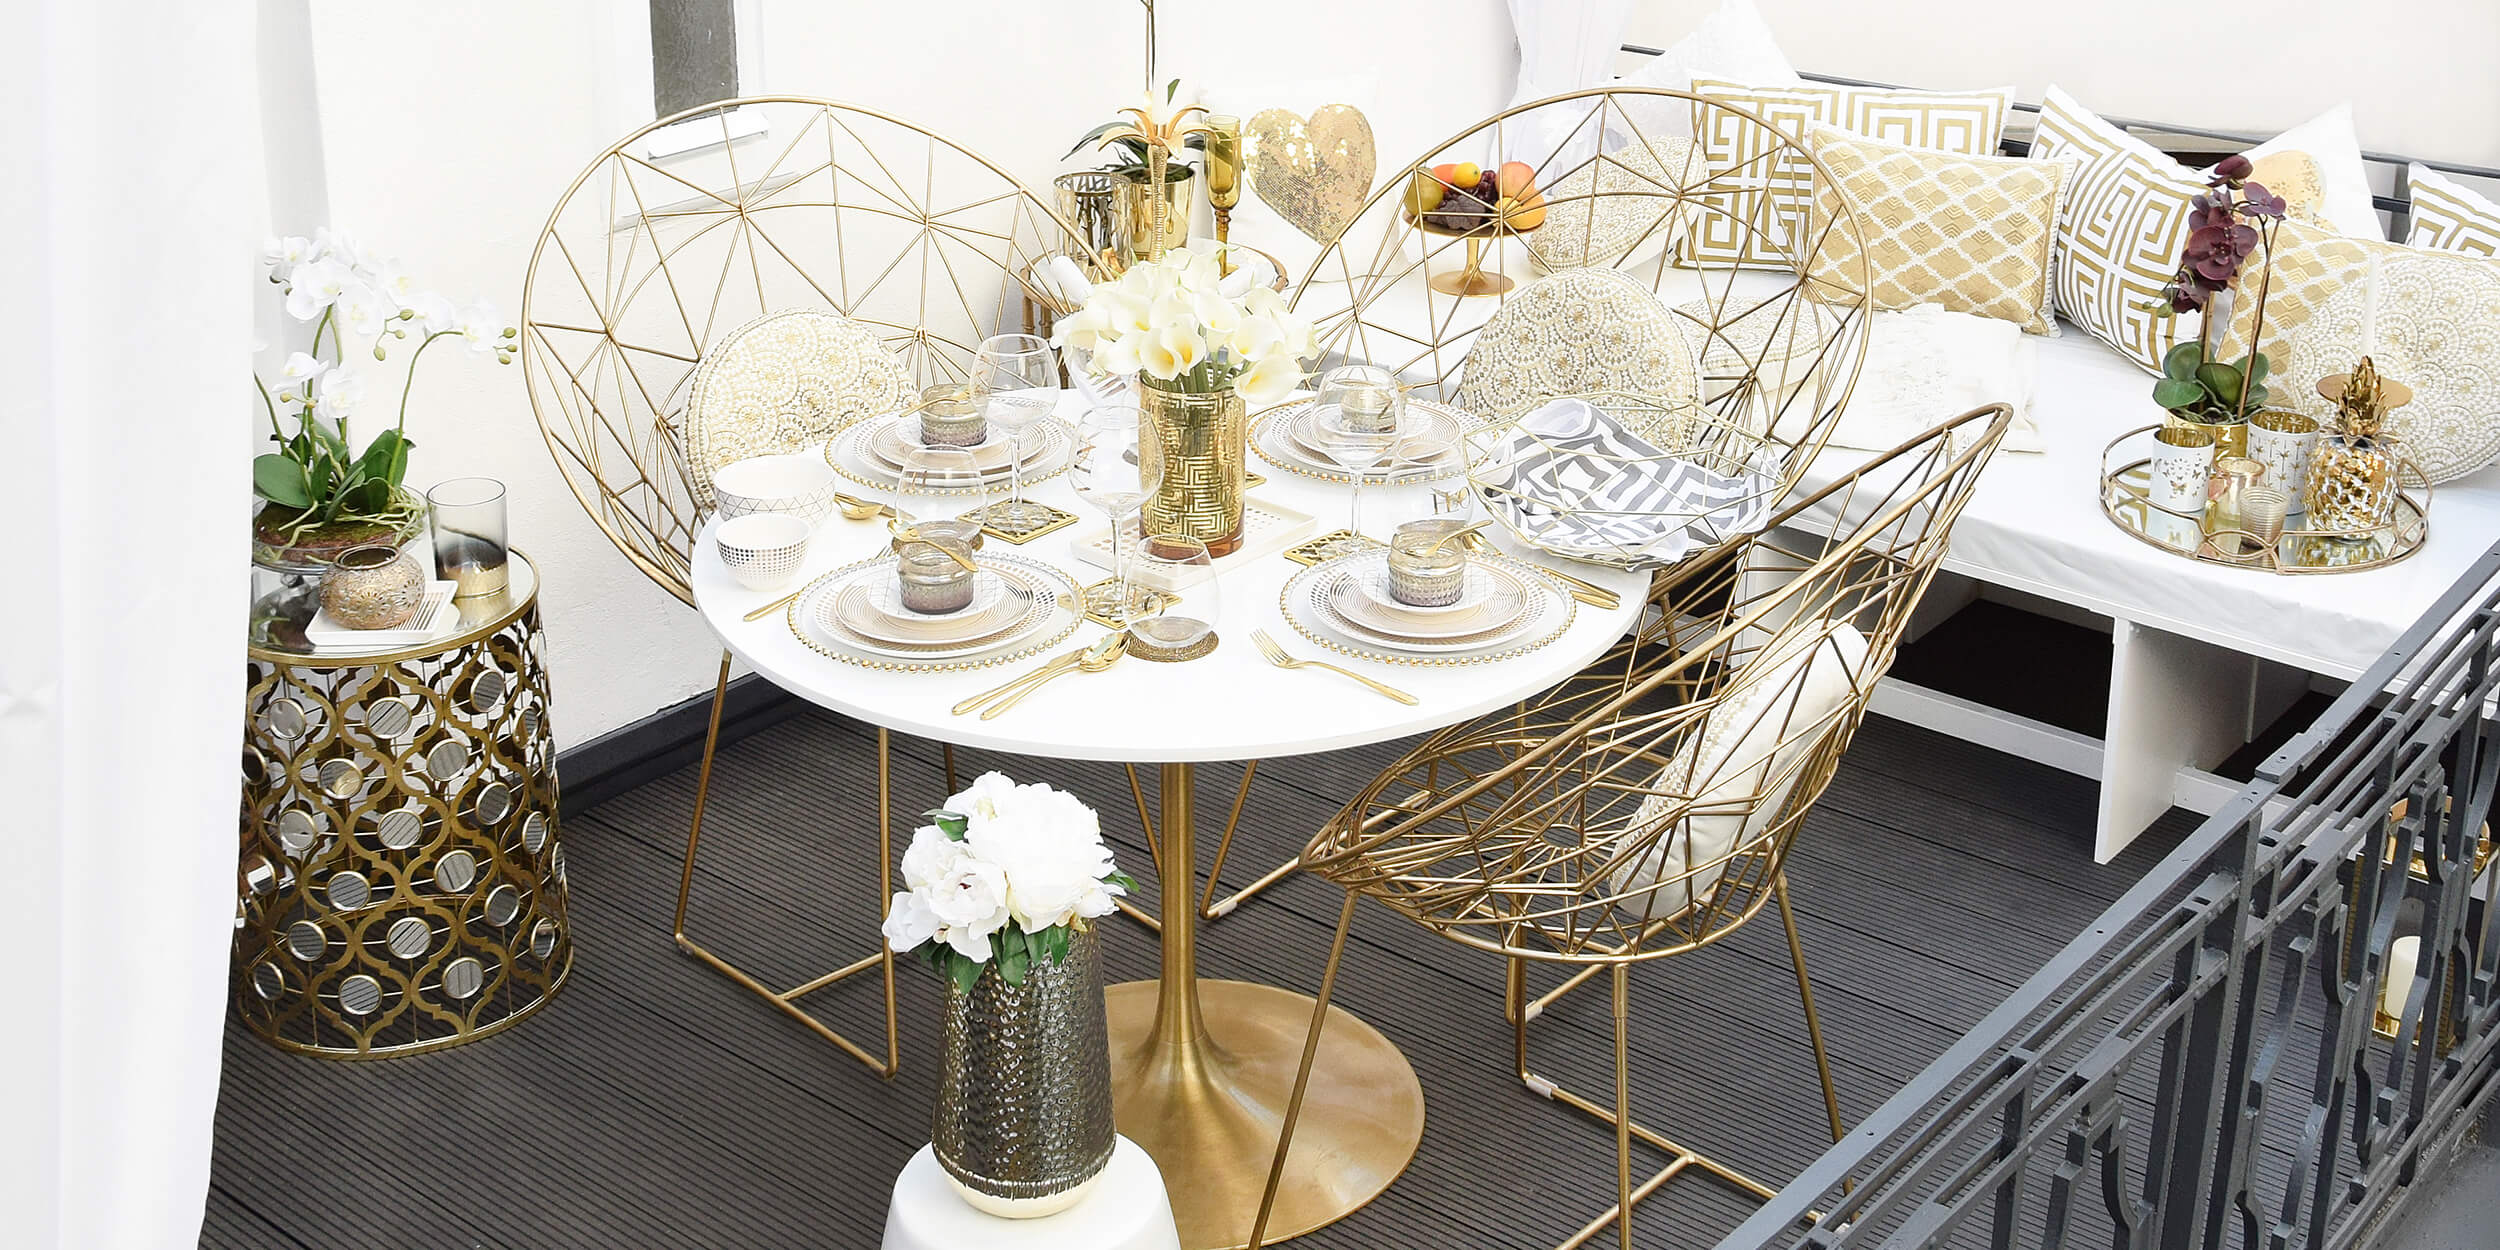 Get the Look: Glamorous Gold Balcony